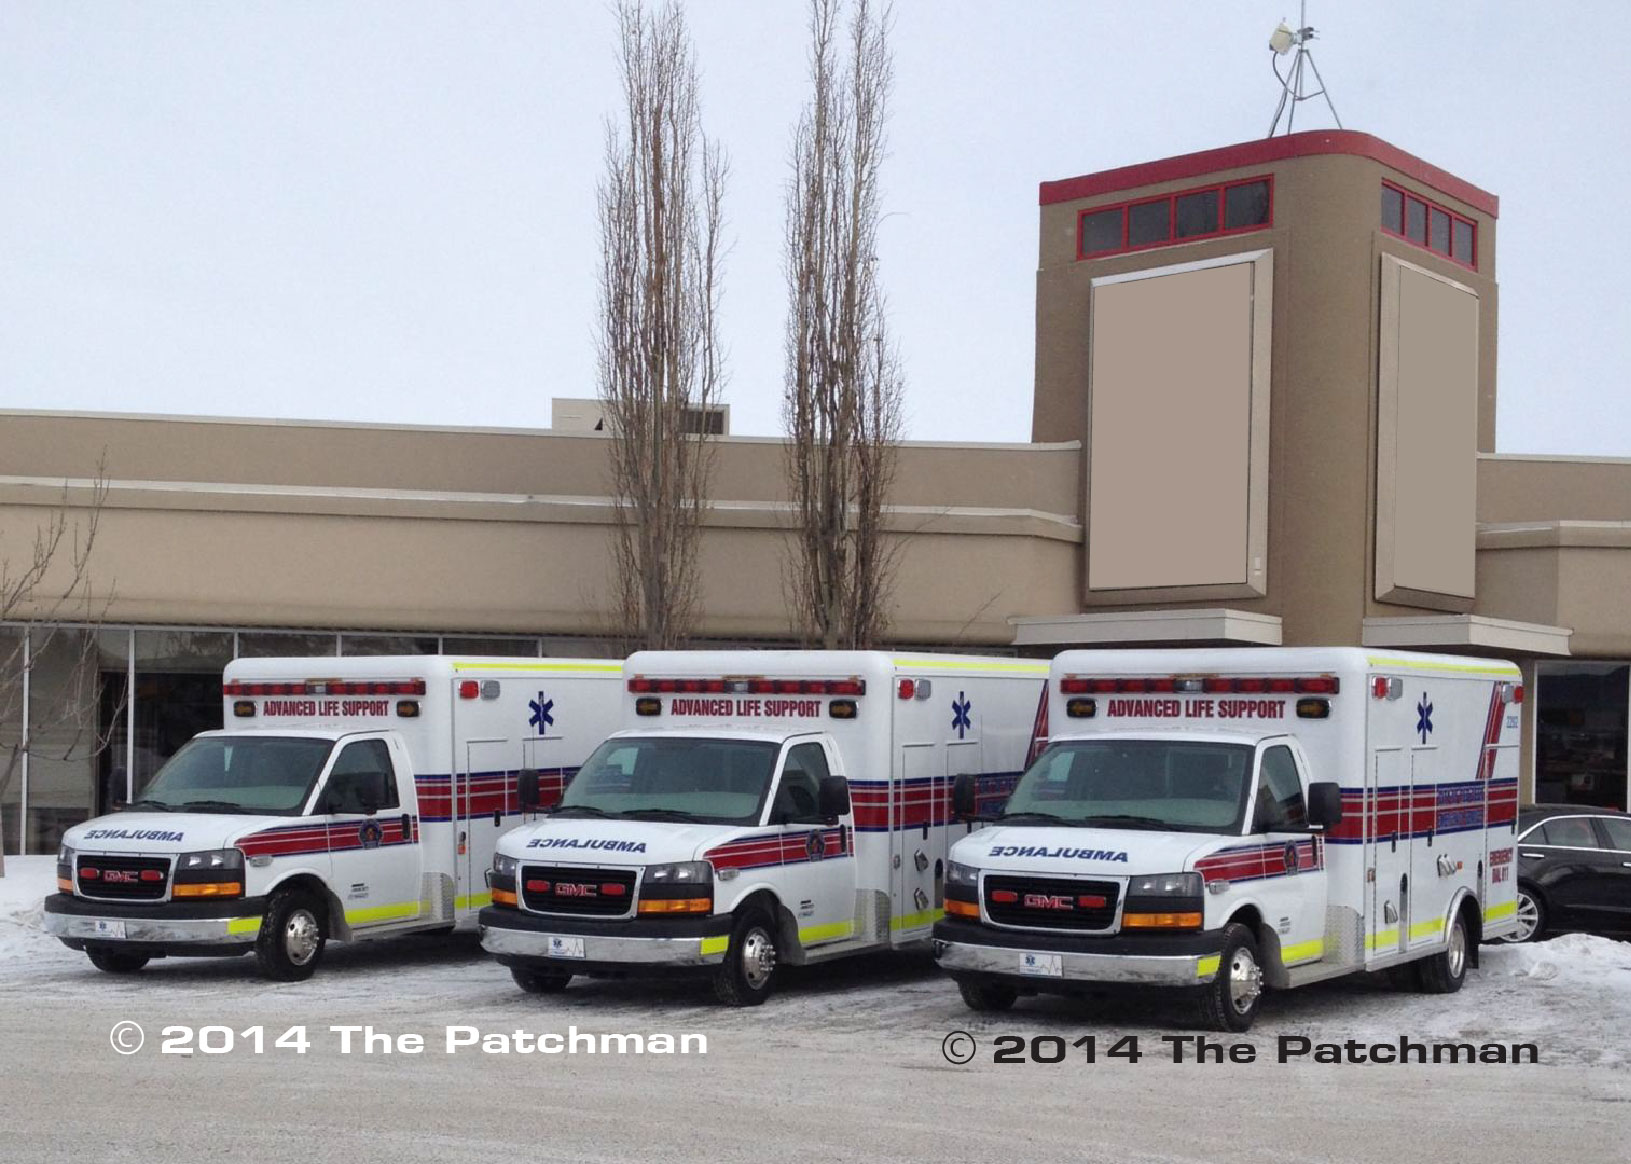 Red Deer Fire - 3 of 6 units